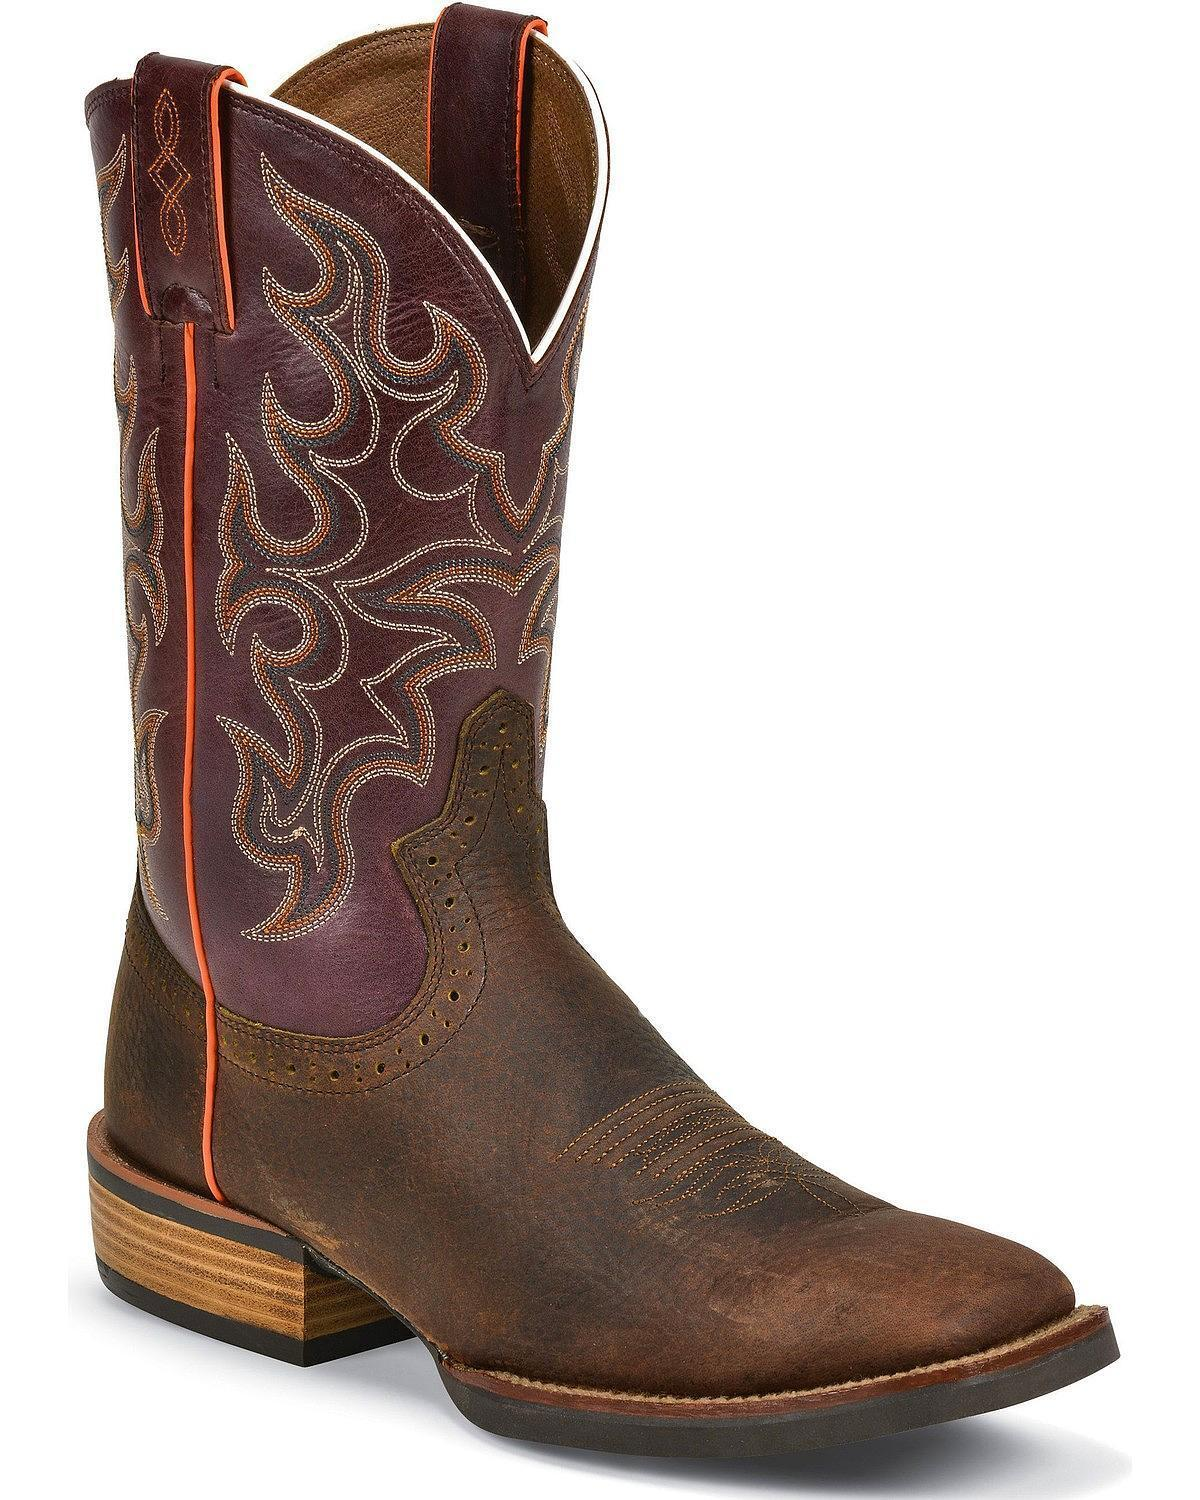 Unique Justin Womenu0026#39;s George Strait Brown Waterproof Cowgirl Boots - Square Toe   Sheplers